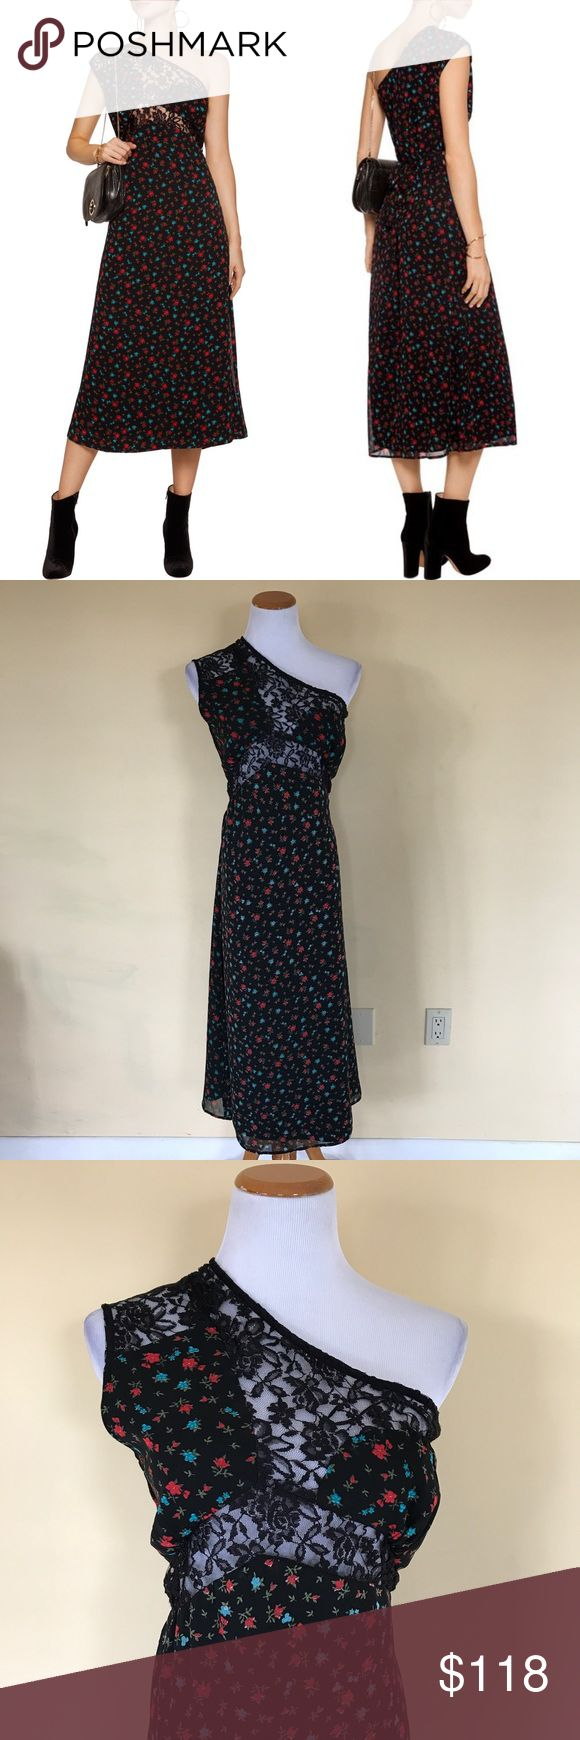 NWT Walter Baker One Should Lace Floral MariaDress New with tag by Walter Baker. Floral One Shoulder dress with lace details. Super unique, versatile, and beautiful! Size 2. Check out my closet for bundles! Walter Baker Dresses One Shoulder